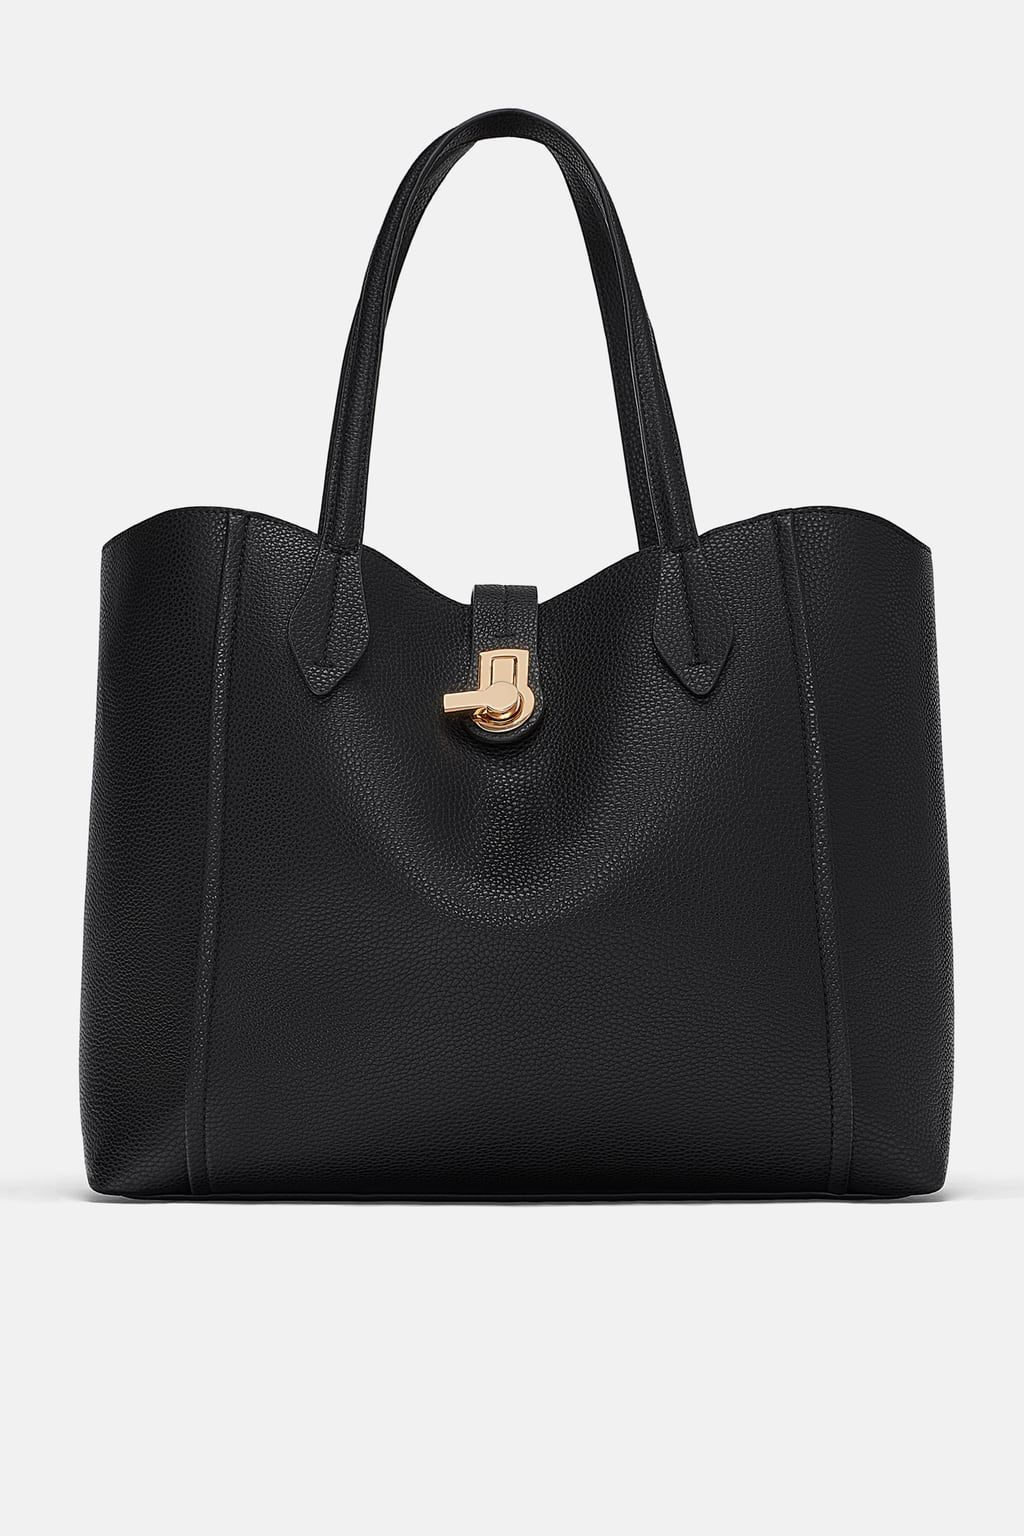 33eef550c8 Image 2 of TOTE BAG WITH METAL CLASP from Zara Handle, Shoulder Bag, Bags